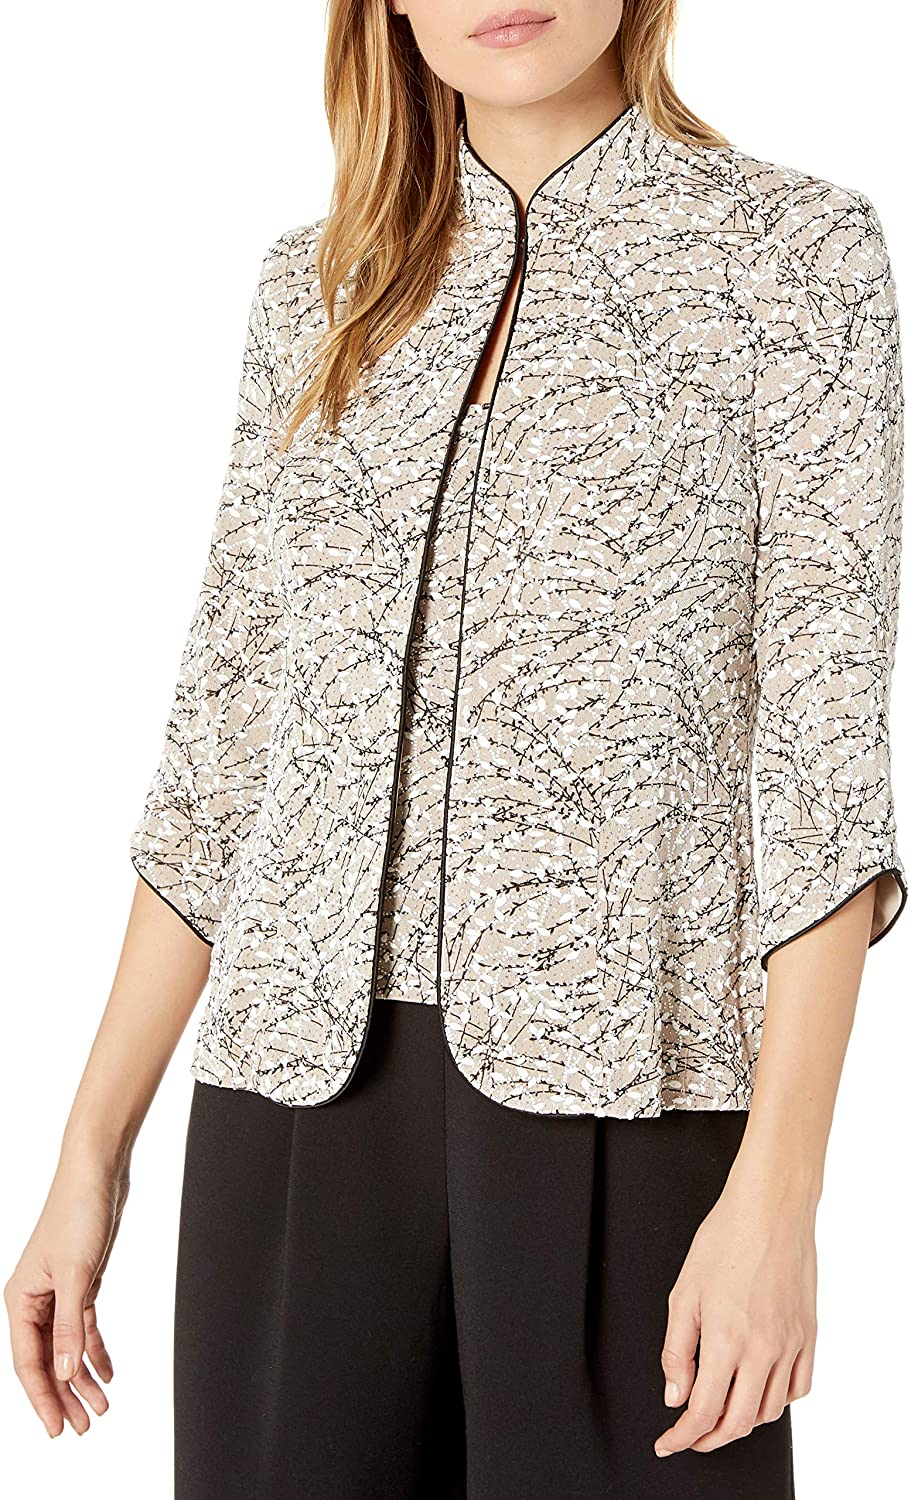 Alex Evenings Women's Mandarin Neck Manufacturer direct delivery Max 87% OFF Jacket Tank Twinset Top and